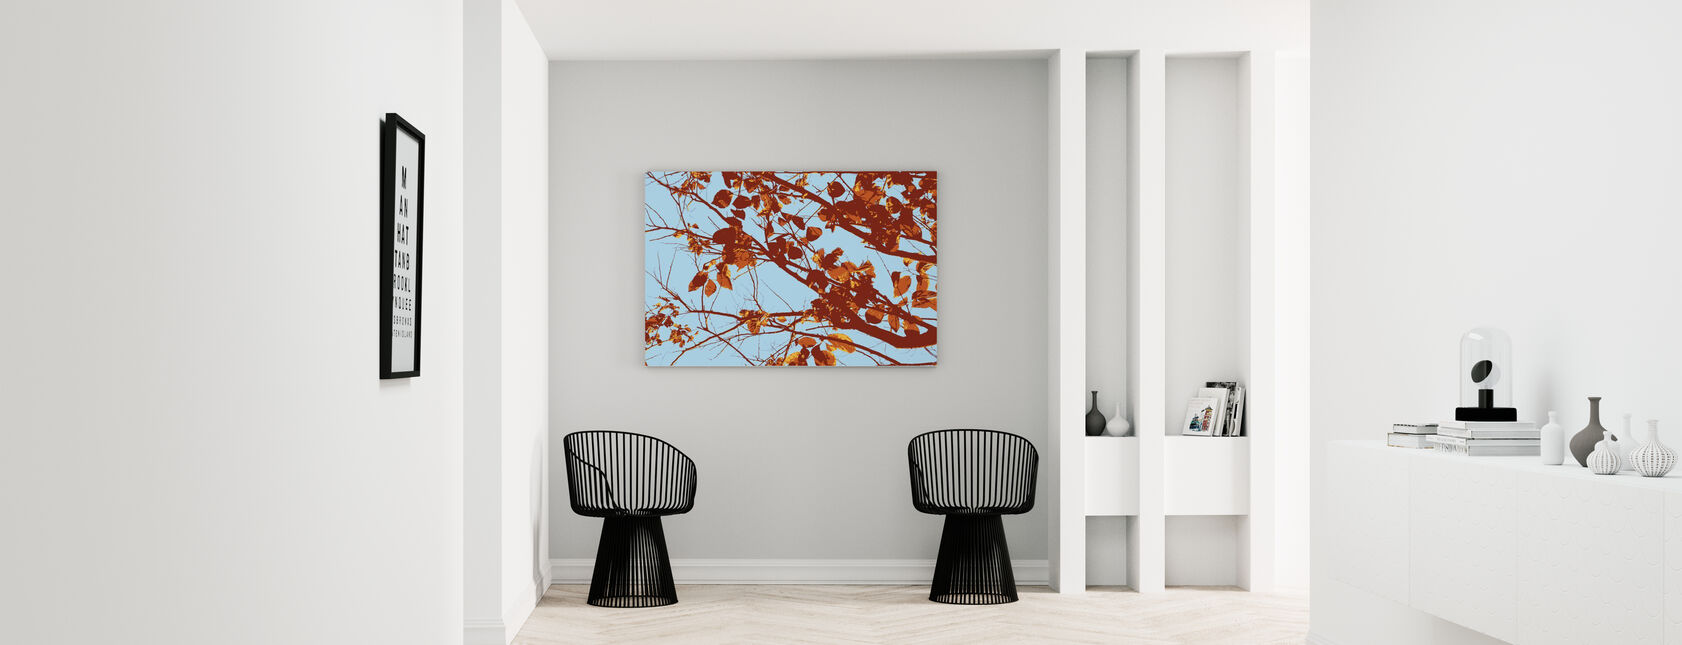 Rode Boom - Canvas print - Gang